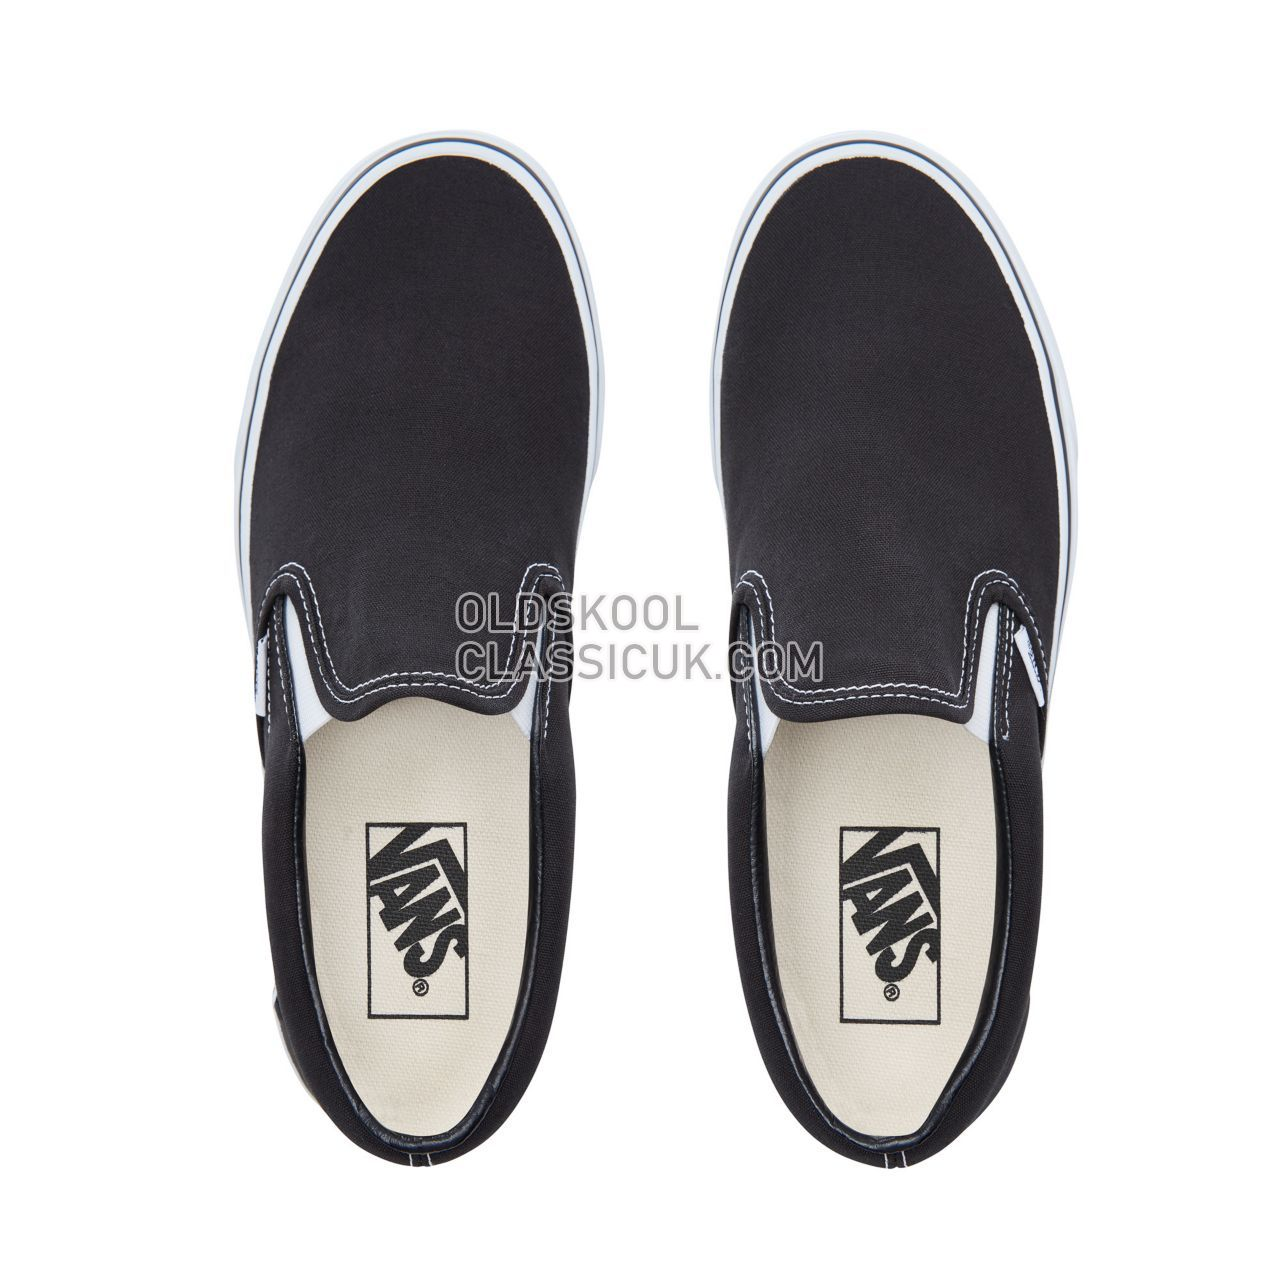 Vans Classic Slip-On Sneakers Mens Black VN000EYEBLK Shoes